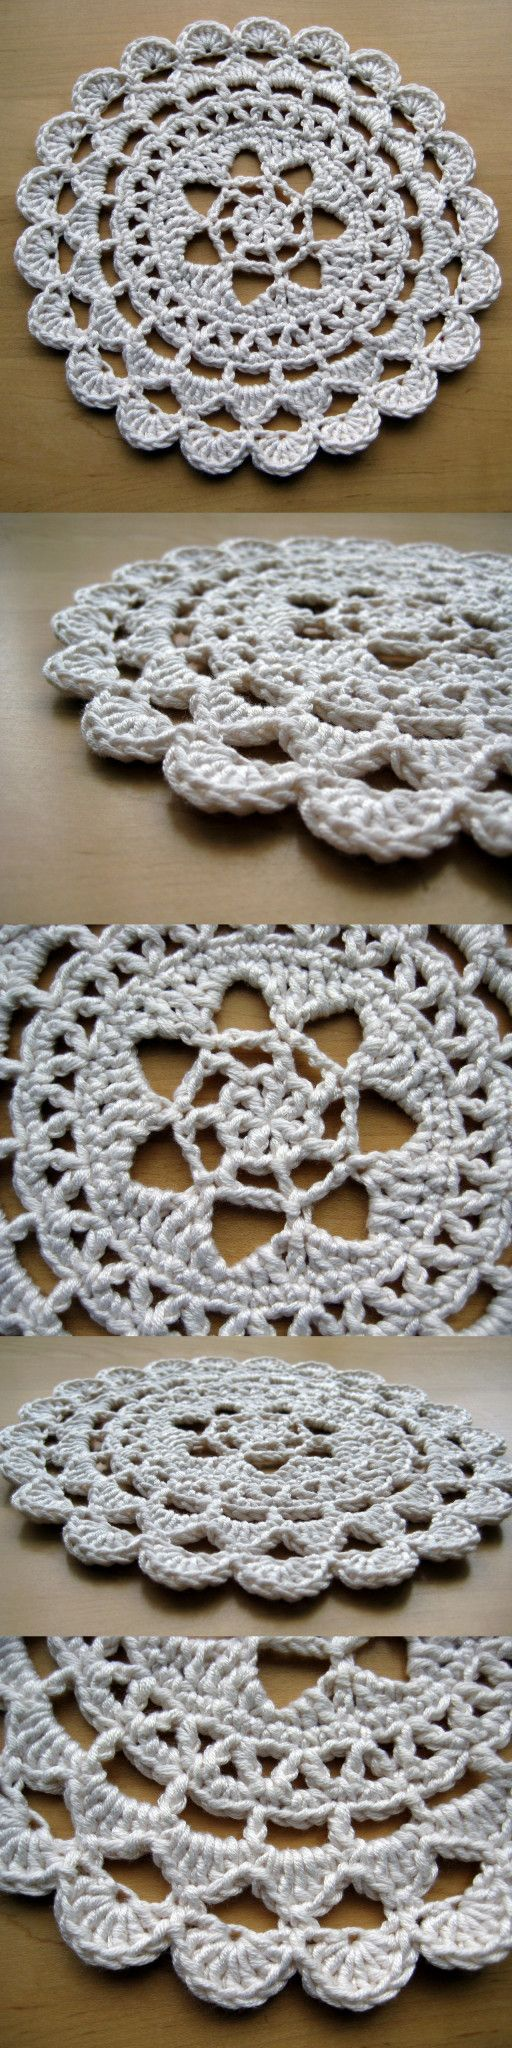 24 best crochet doily patterns images on pinterest free crochet pretty passion flower doily free pattern in dk weight yarn maybe this would translate to a placemat with cotton worsted and a bigger hook bankloansurffo Gallery